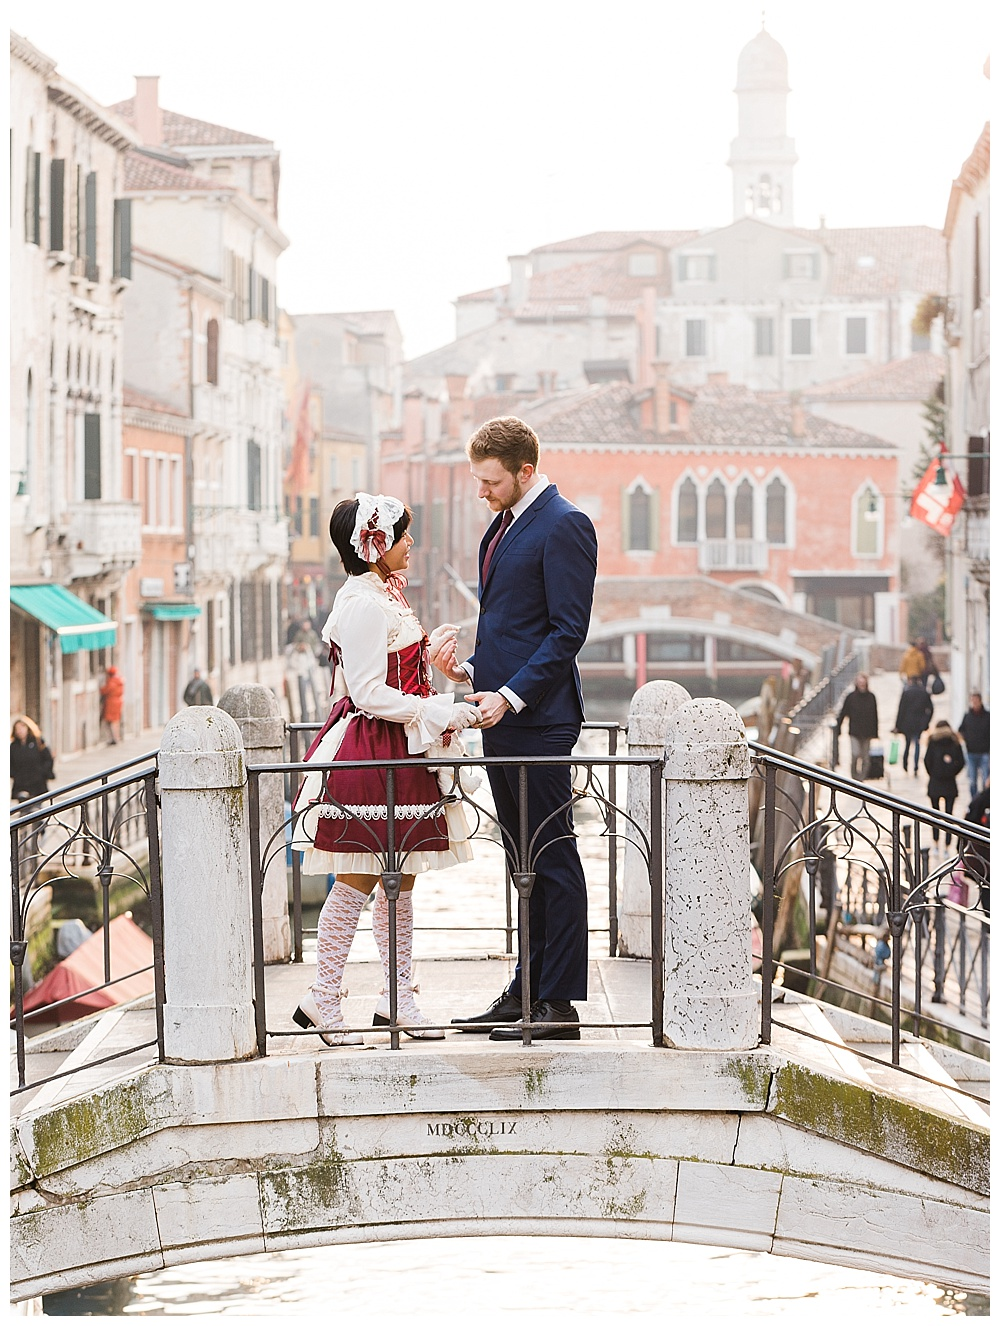 couple-photoshoot-in-venice-stefano-degirmenci_0124.jpg